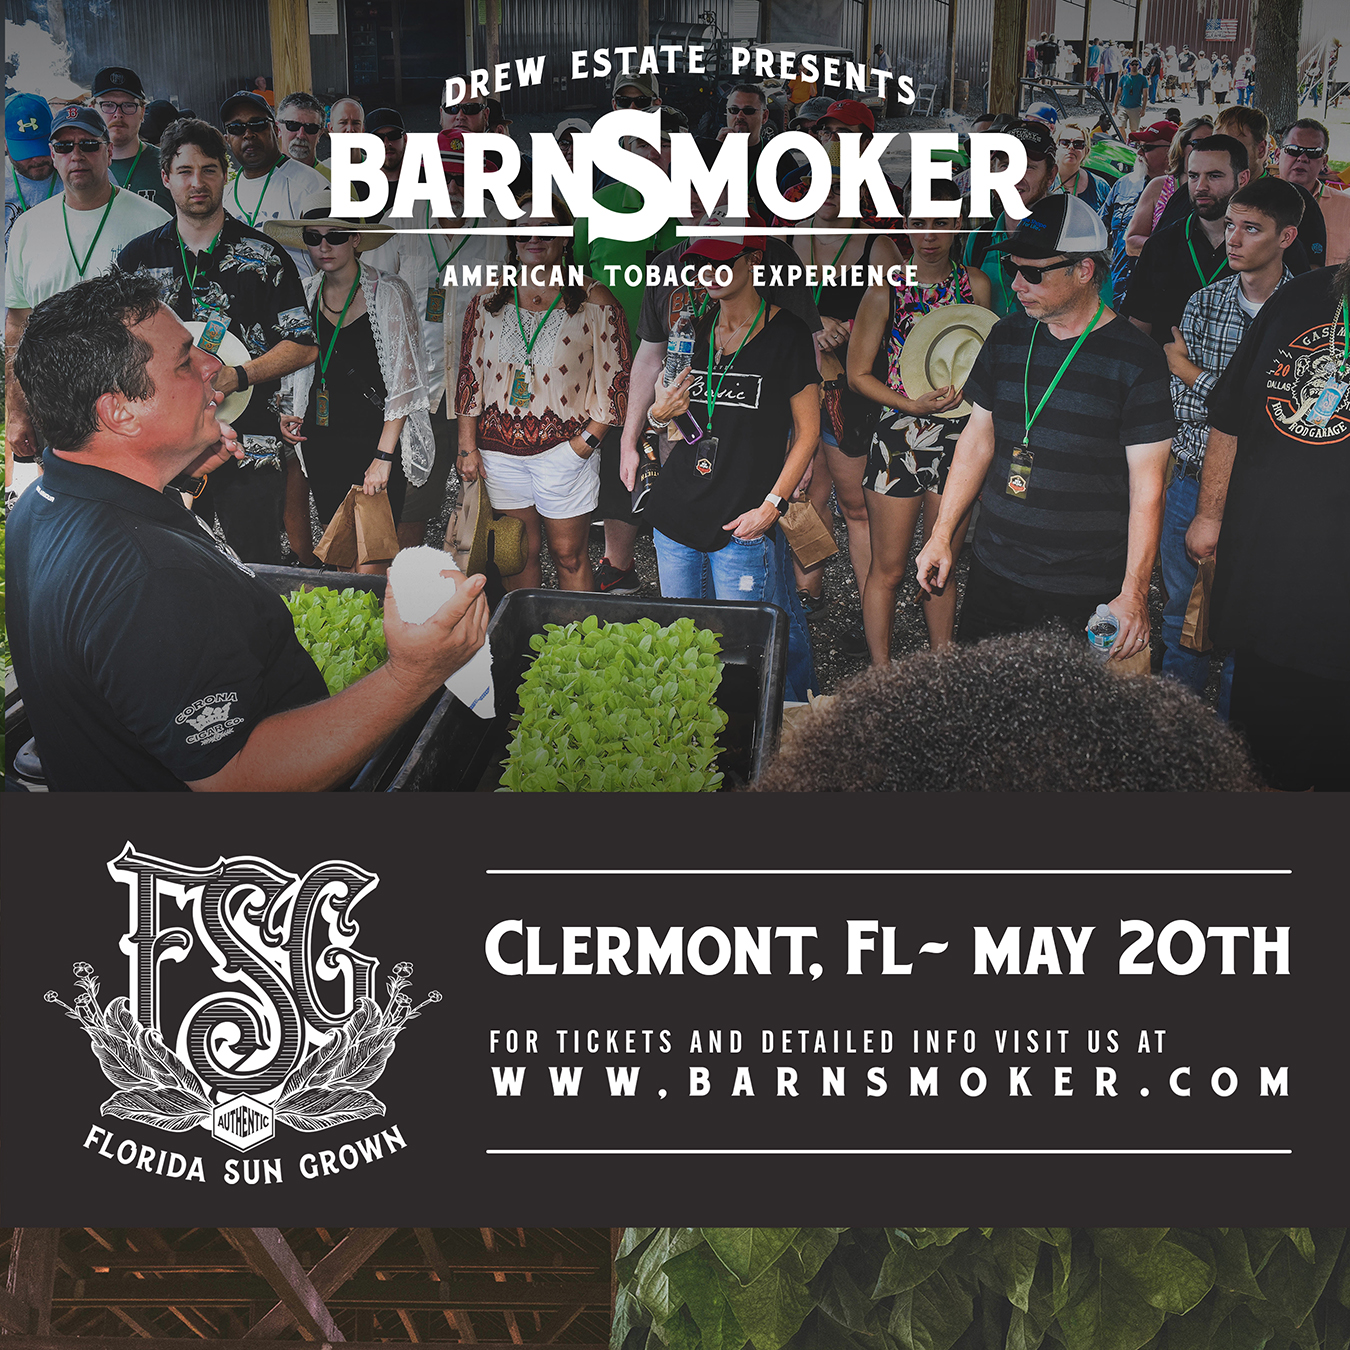 Florida Barn Smoker Tickets Now on Sale!